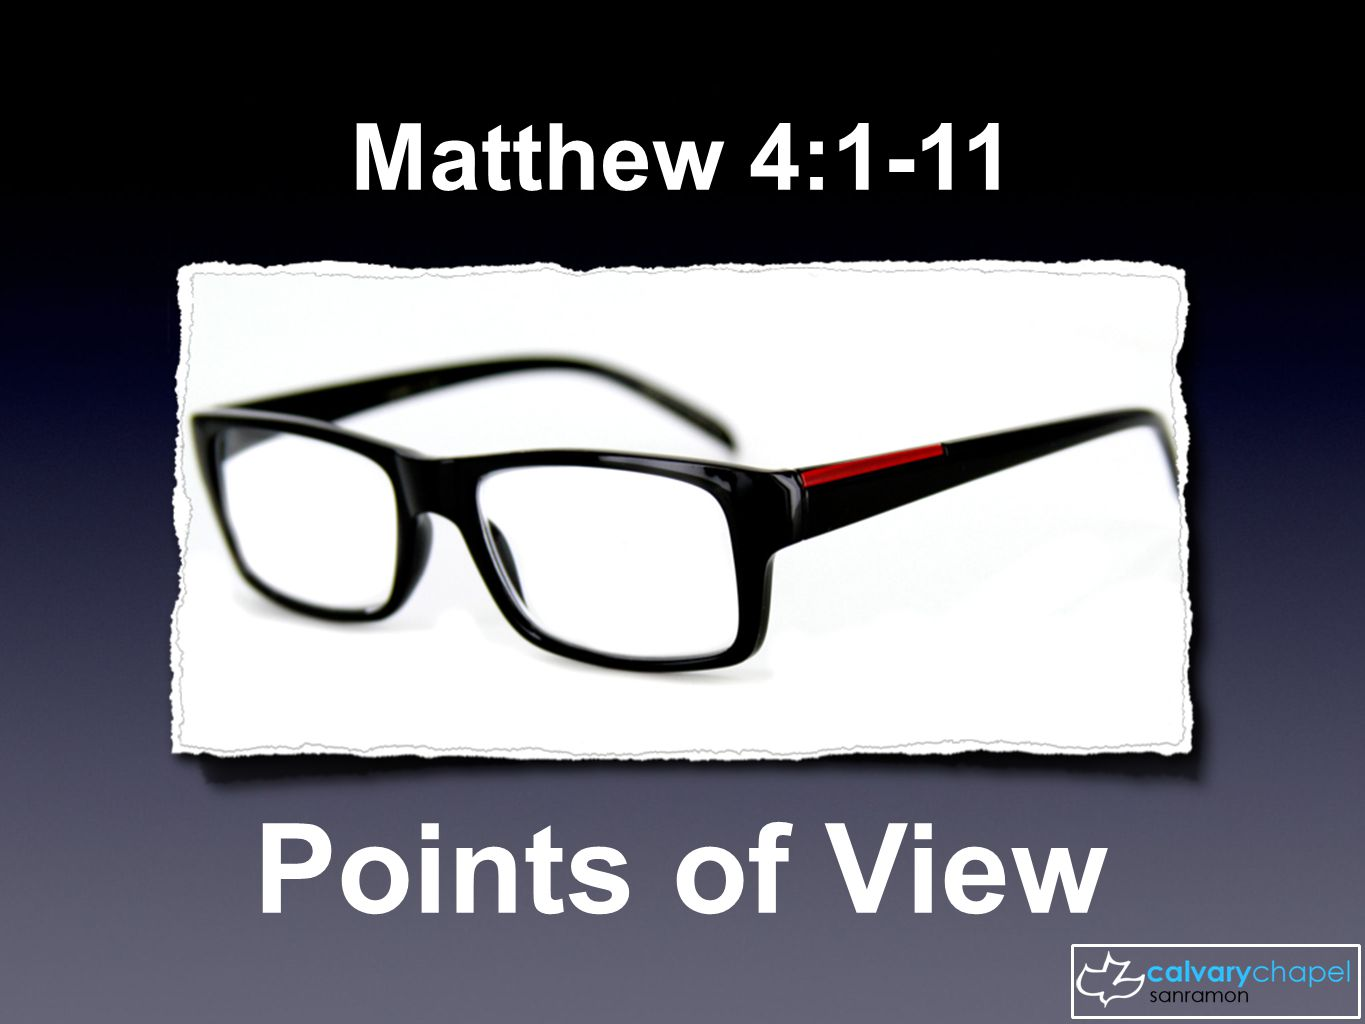 Matthew 4:1-11 Points of View